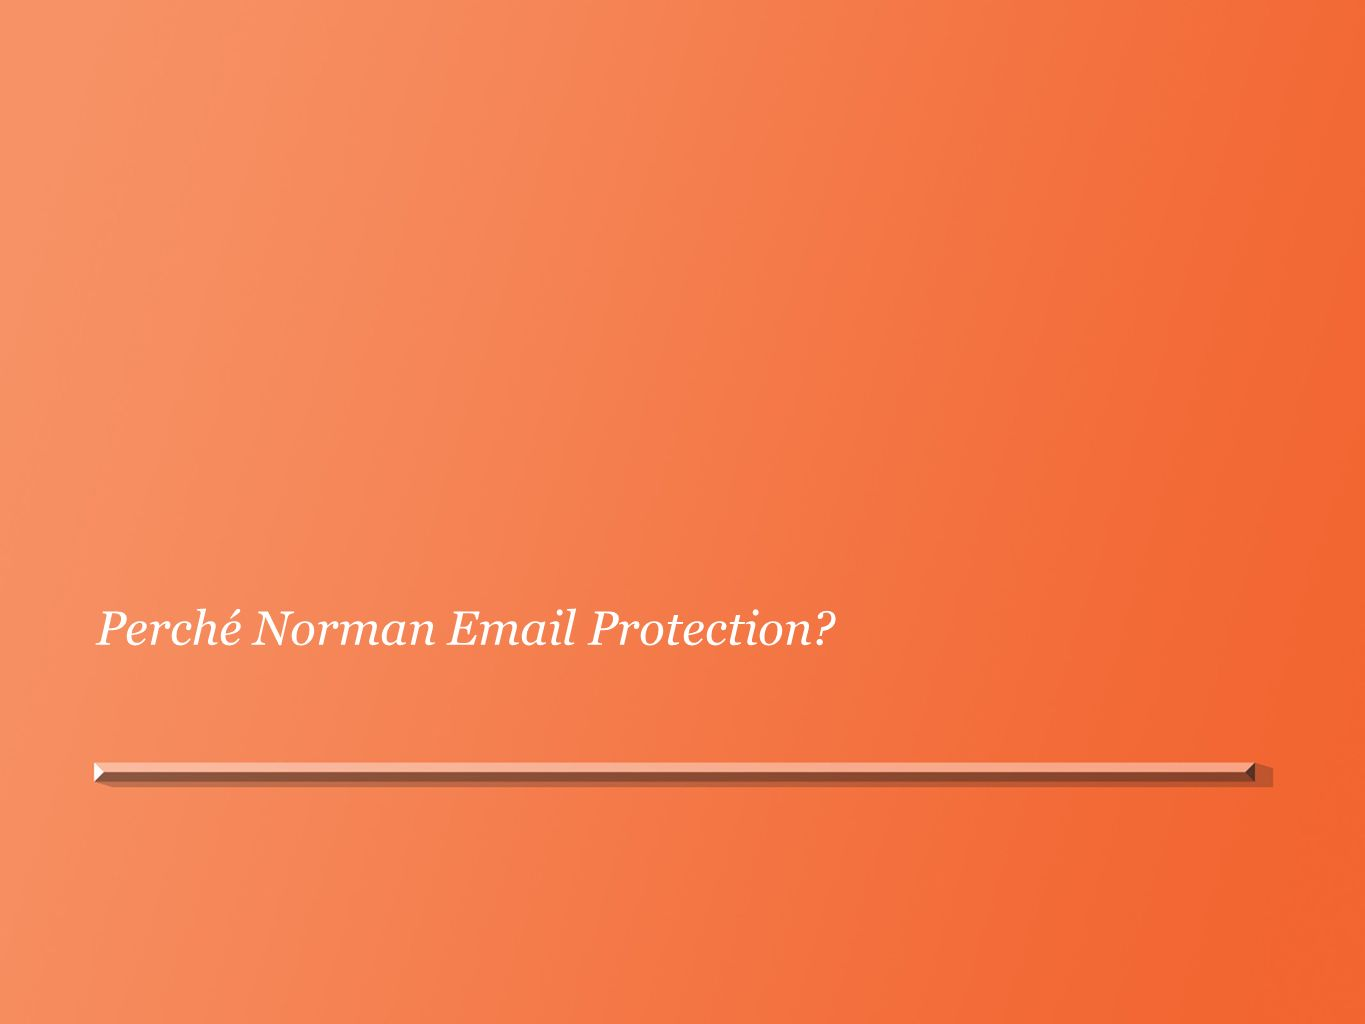 Perché Norman Email Protection?